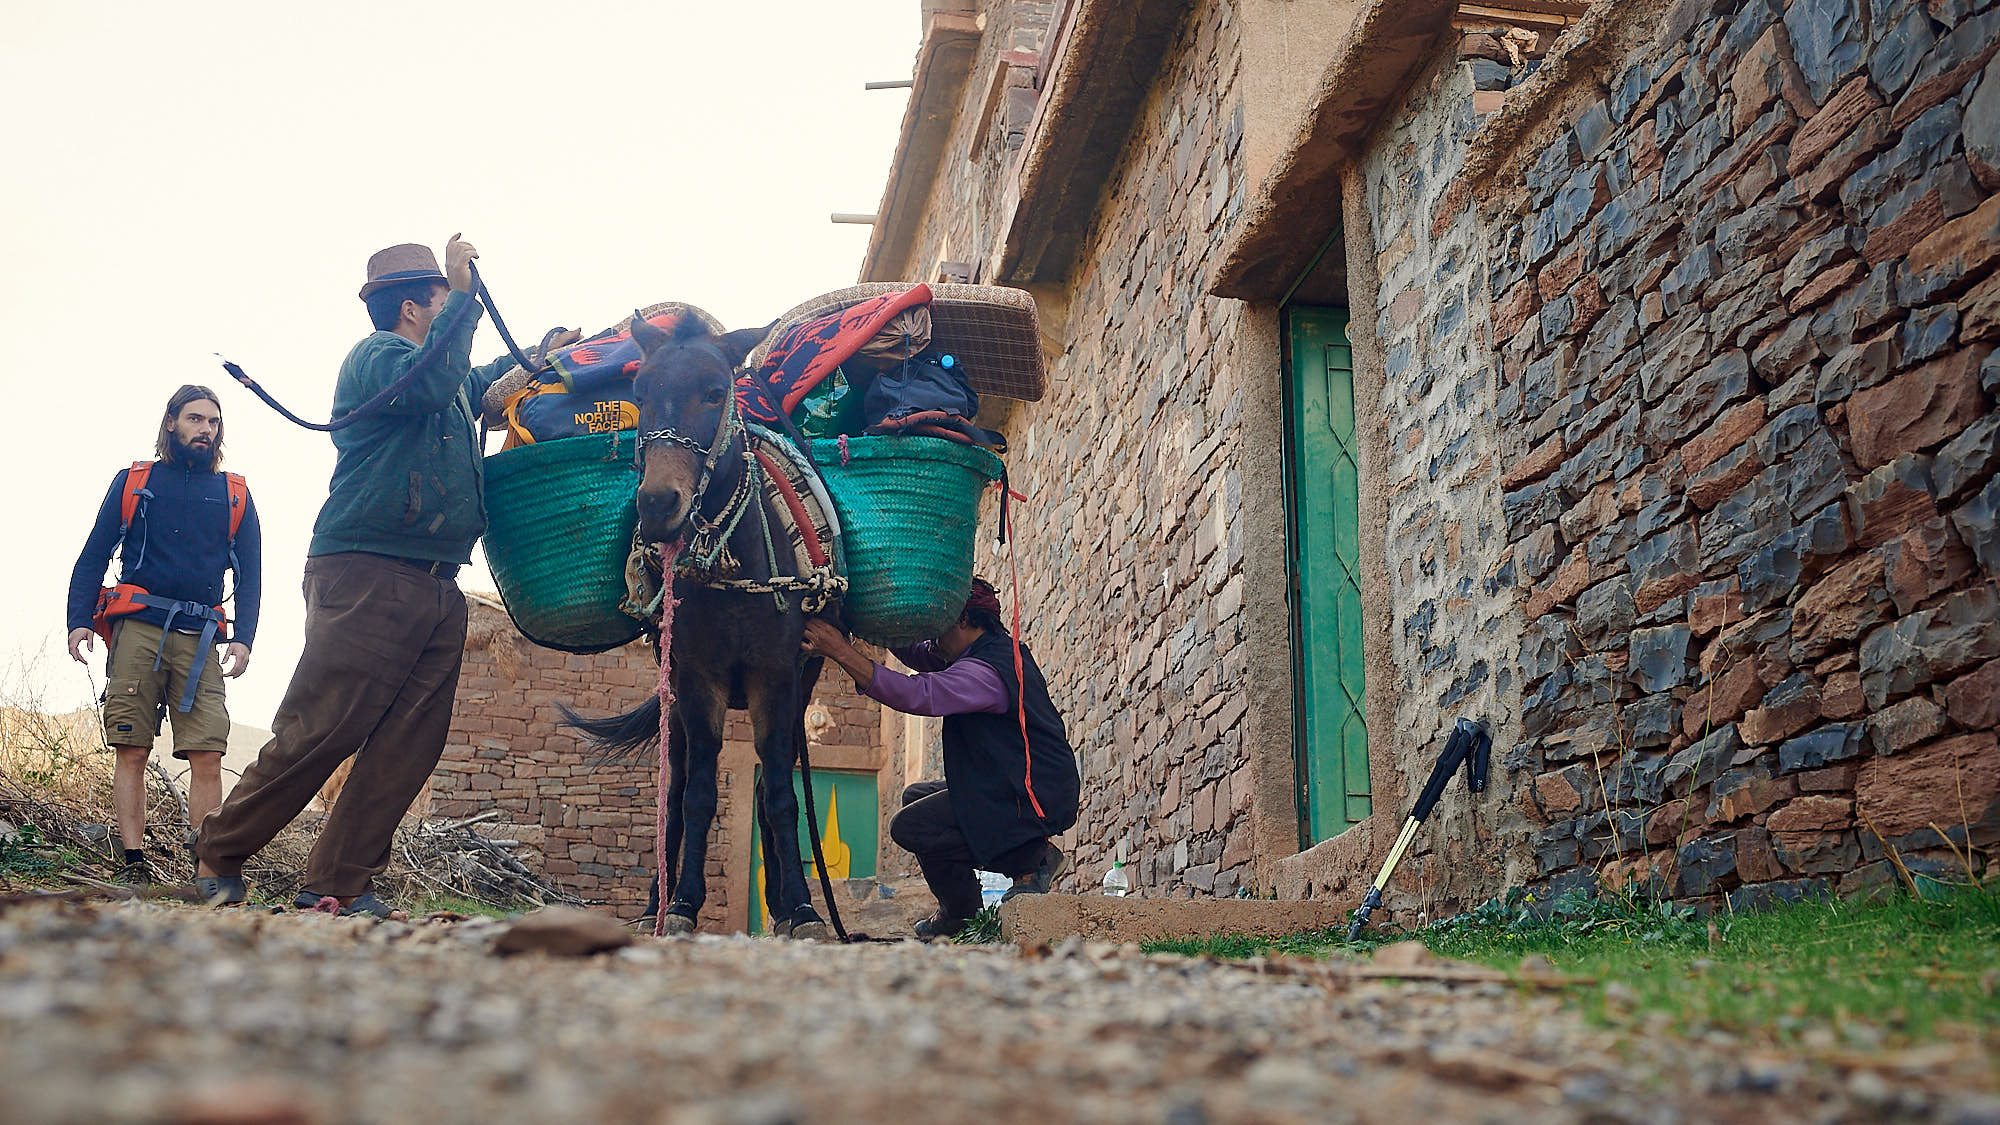 Loading a mule with camping supplies in Morocco